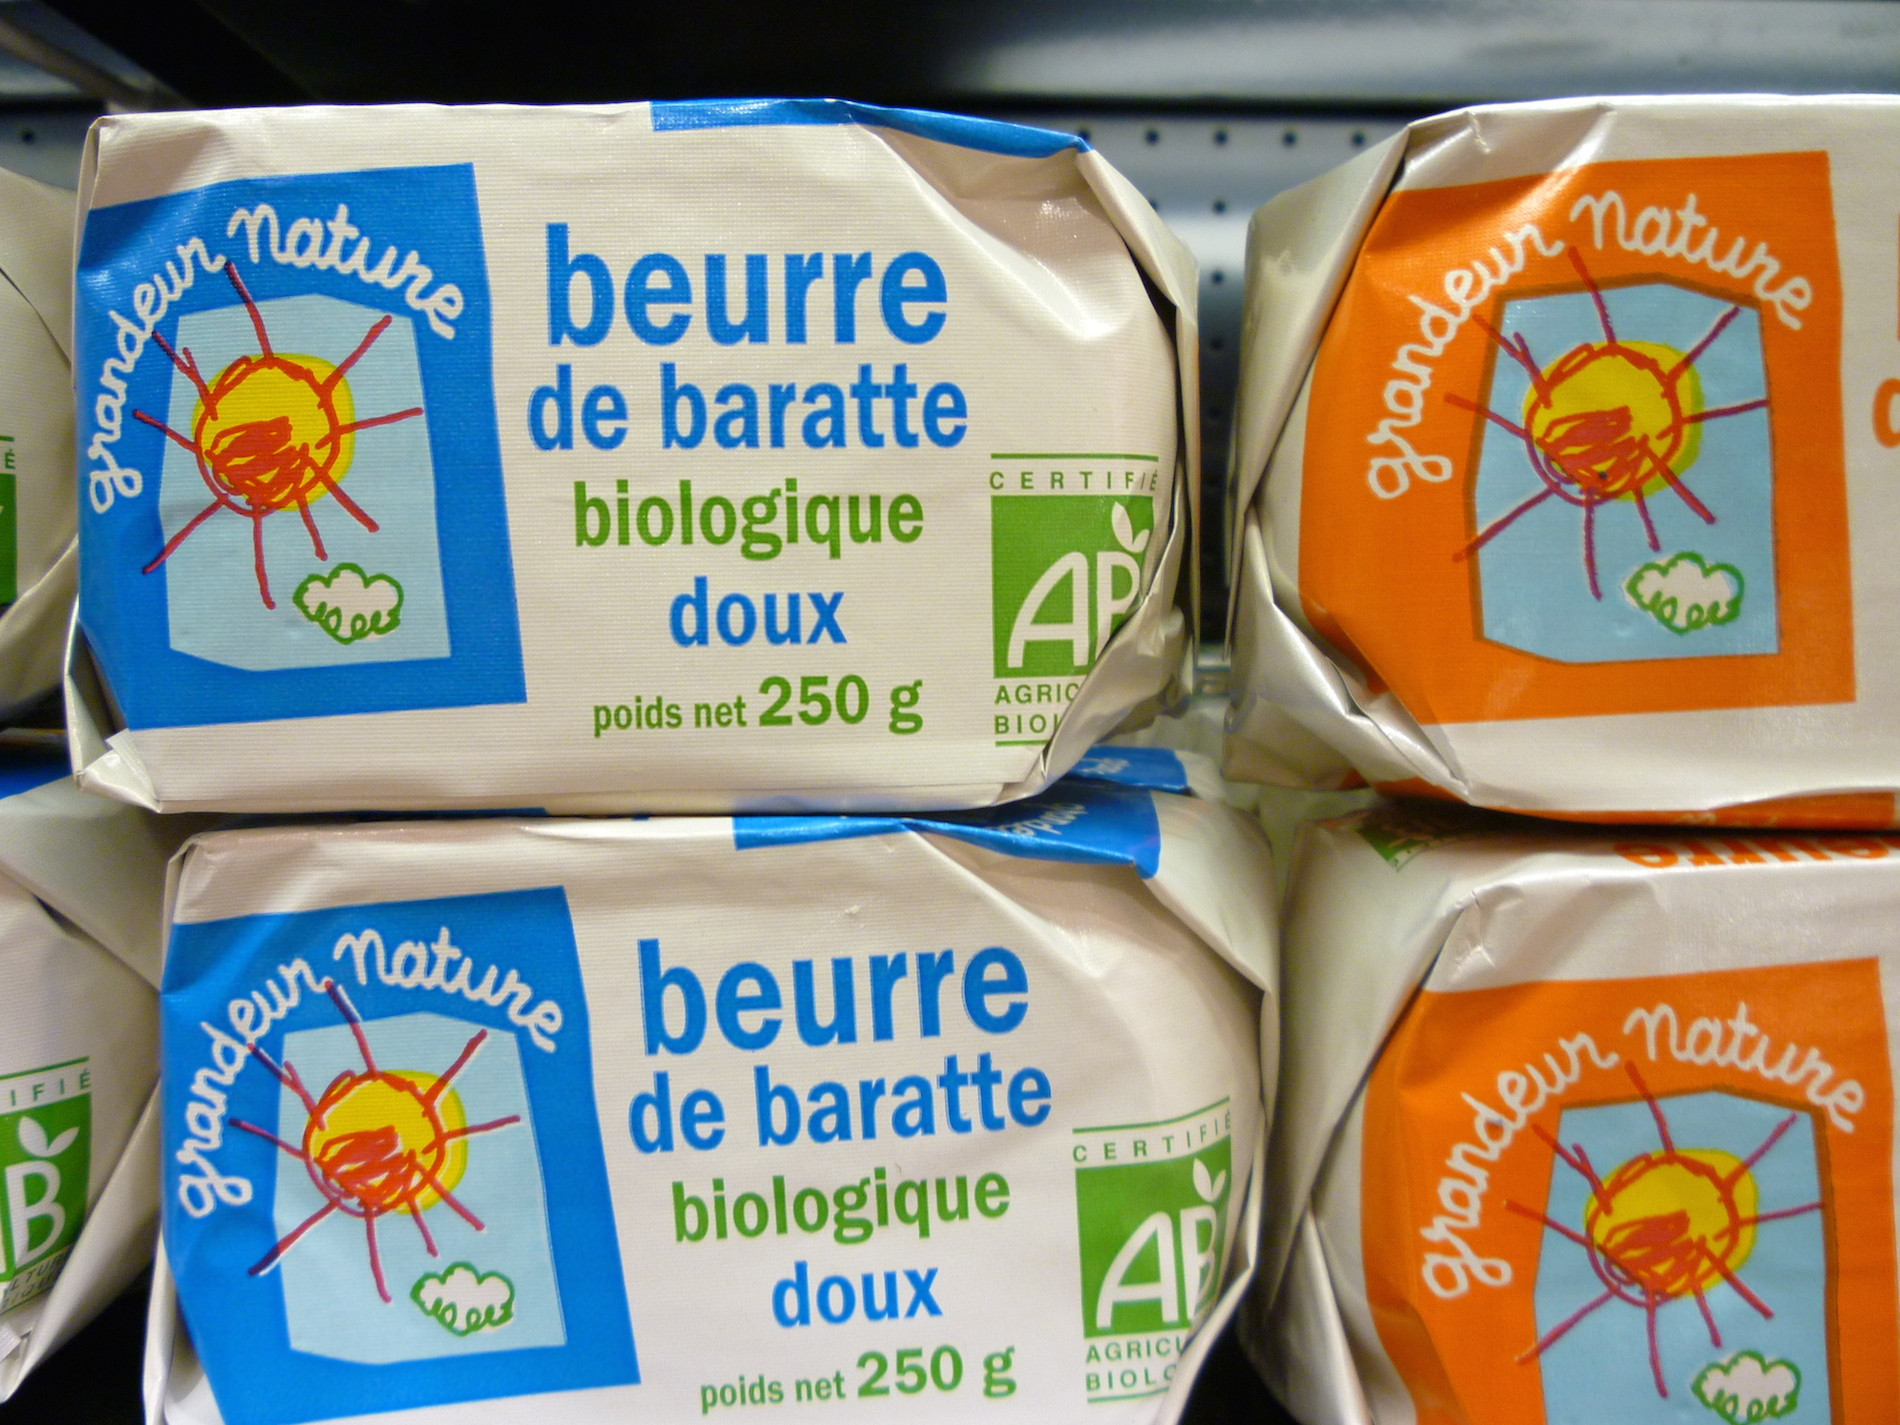 You can also get organic butter in France.